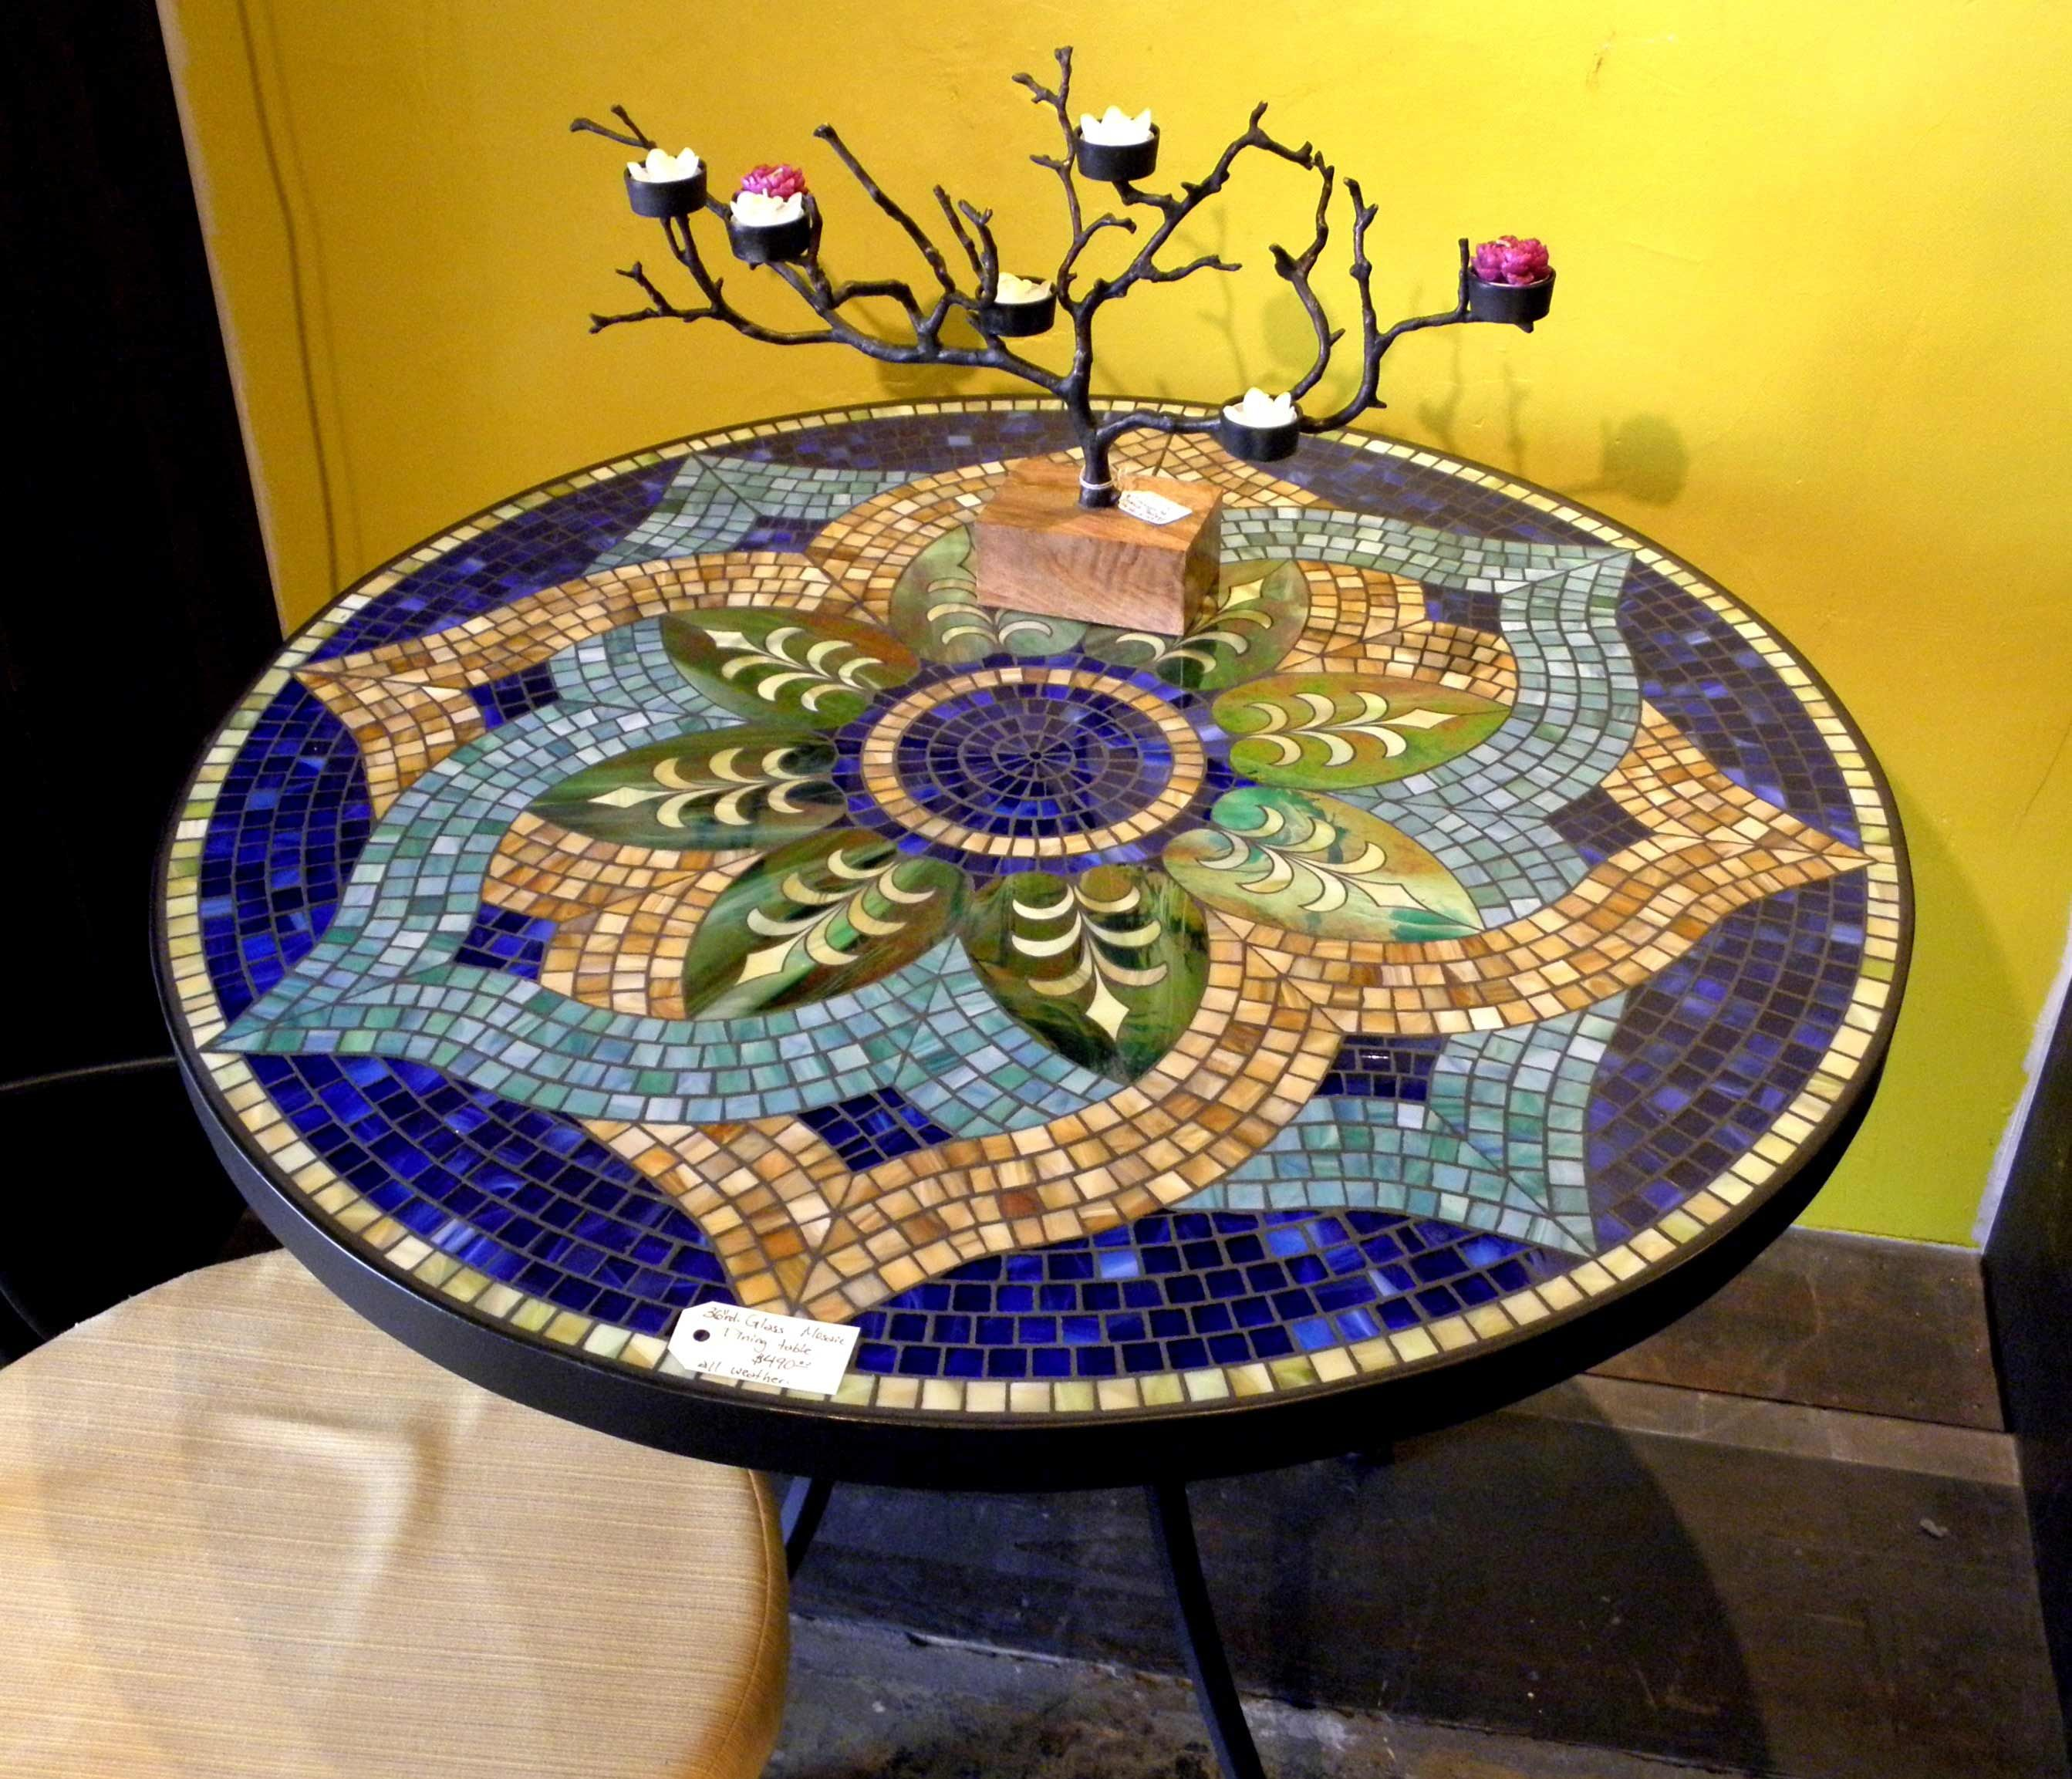 1000 Ideas About Mosaic Tile Table On Pinterest: My Grandma Had A Beautiful Mosaic Table She Made. It's On